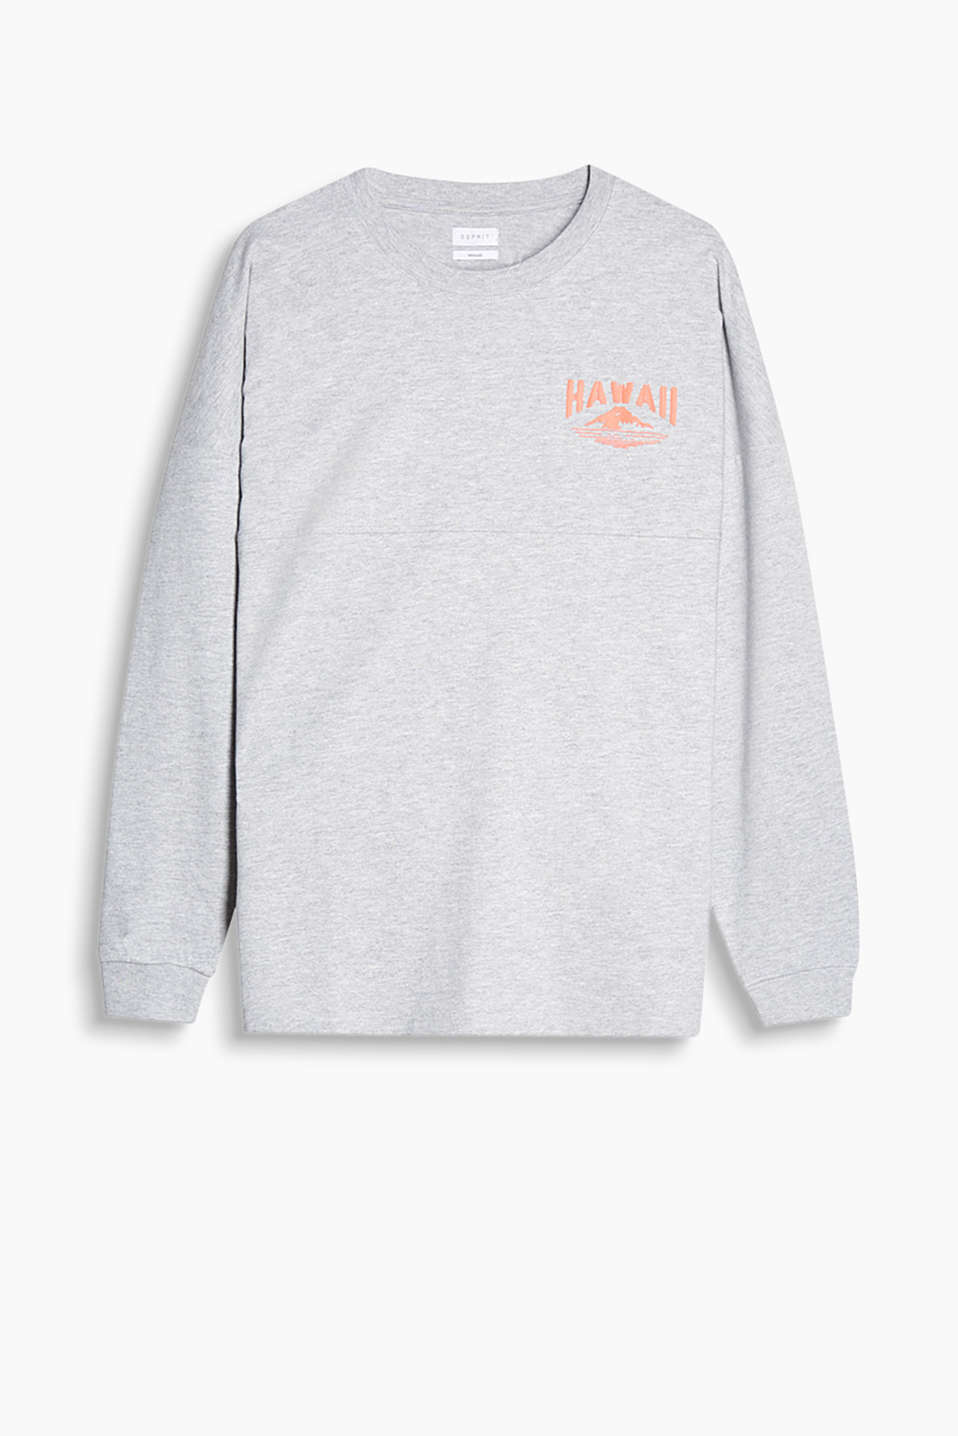 100% cotton, long sleeve top with dropped shoulders and a textured print